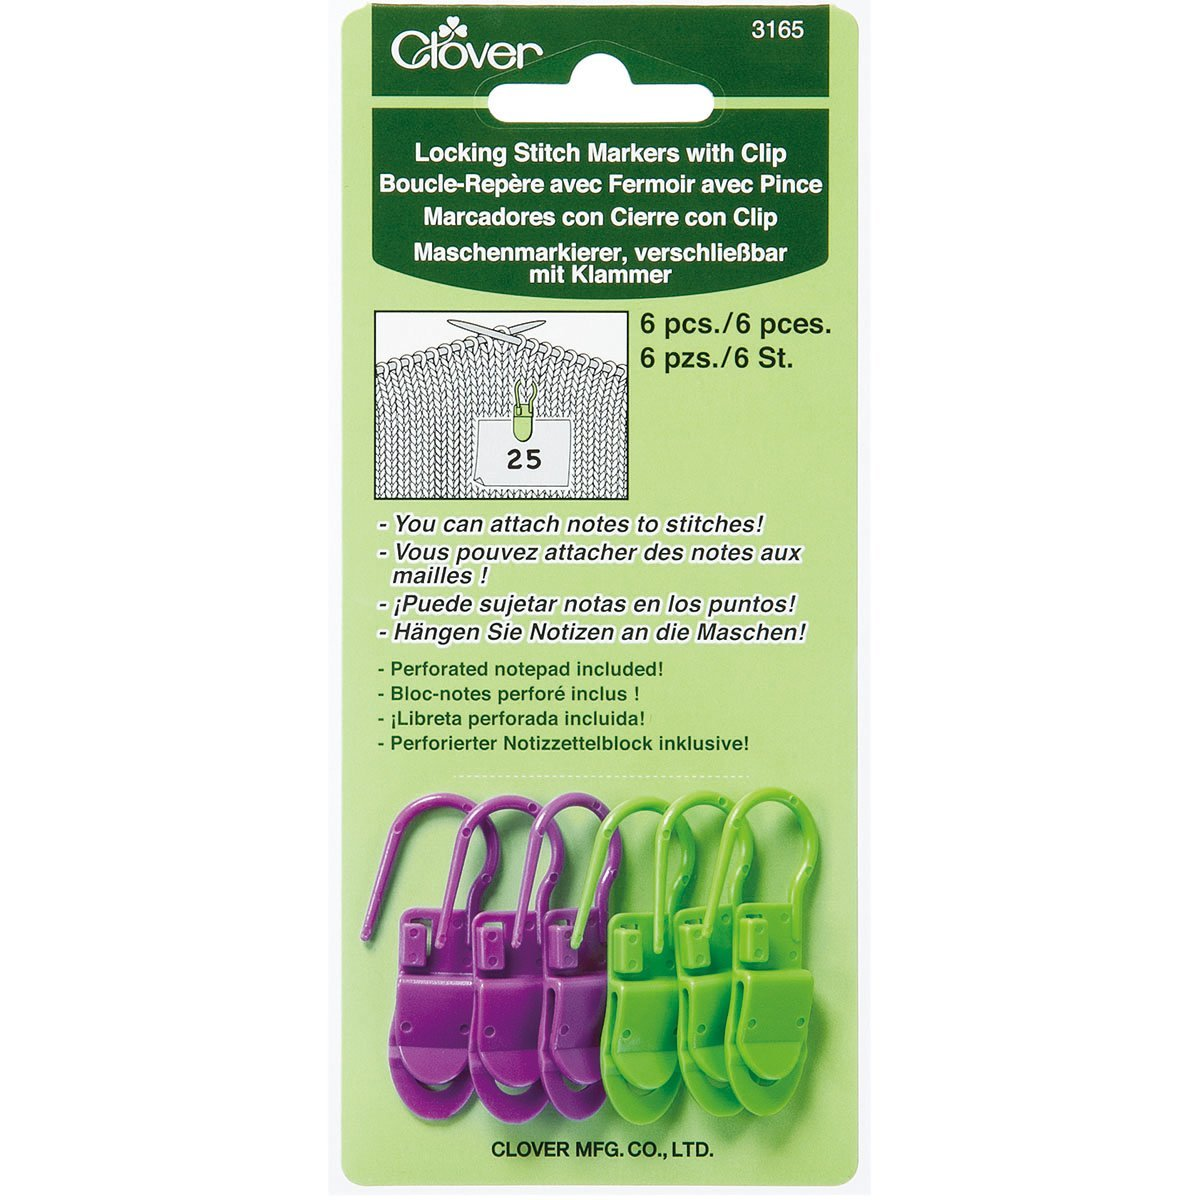 Locking Stitch Markers with Clips - 6 pieces